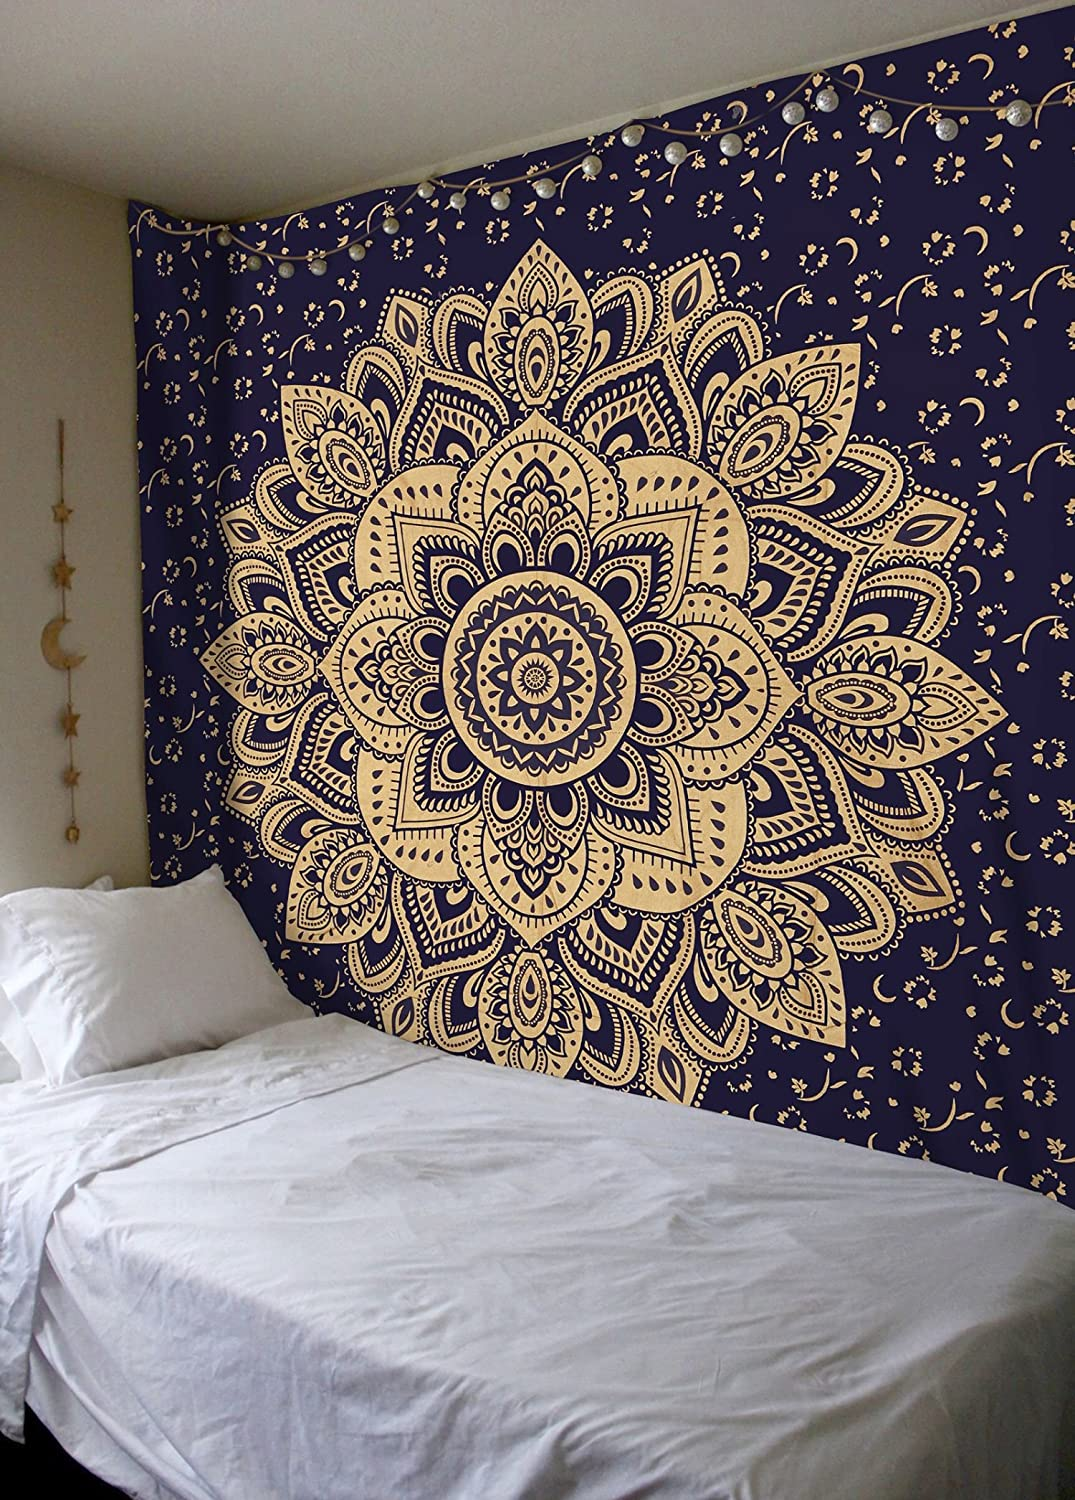 New Launched Blue Gold Pion Ombre Mandala Tapestry By Madhu International Boho Mandala Tapestry Wall Hanging Gypsy Tapestry Multicolor 85 X 89 Inches